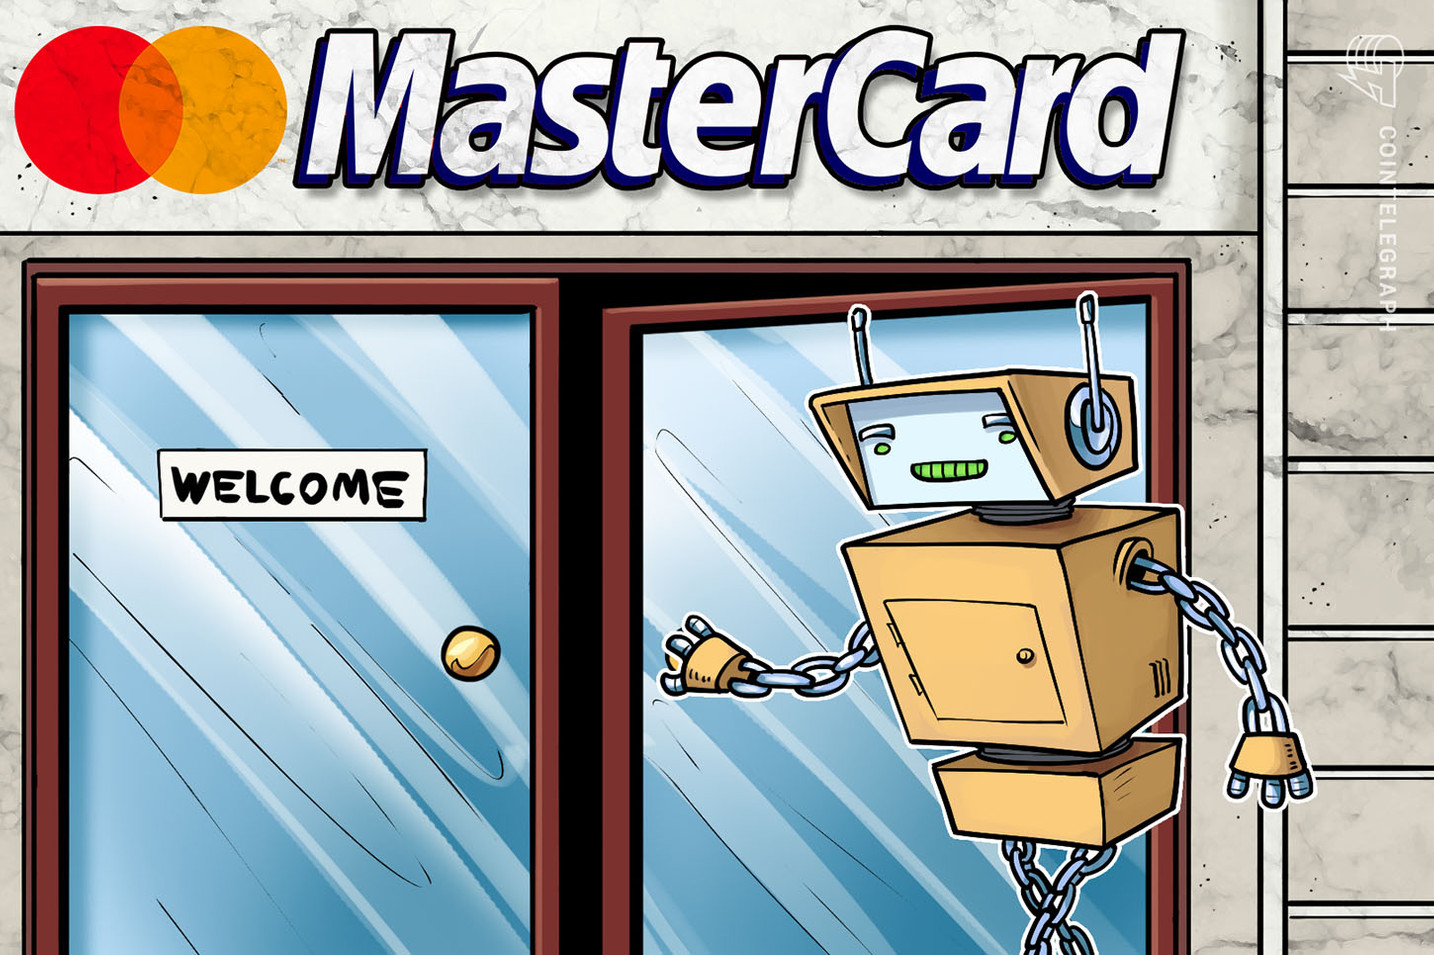 Mastercard Files Patent for Blockchain System to Secure Card Payments